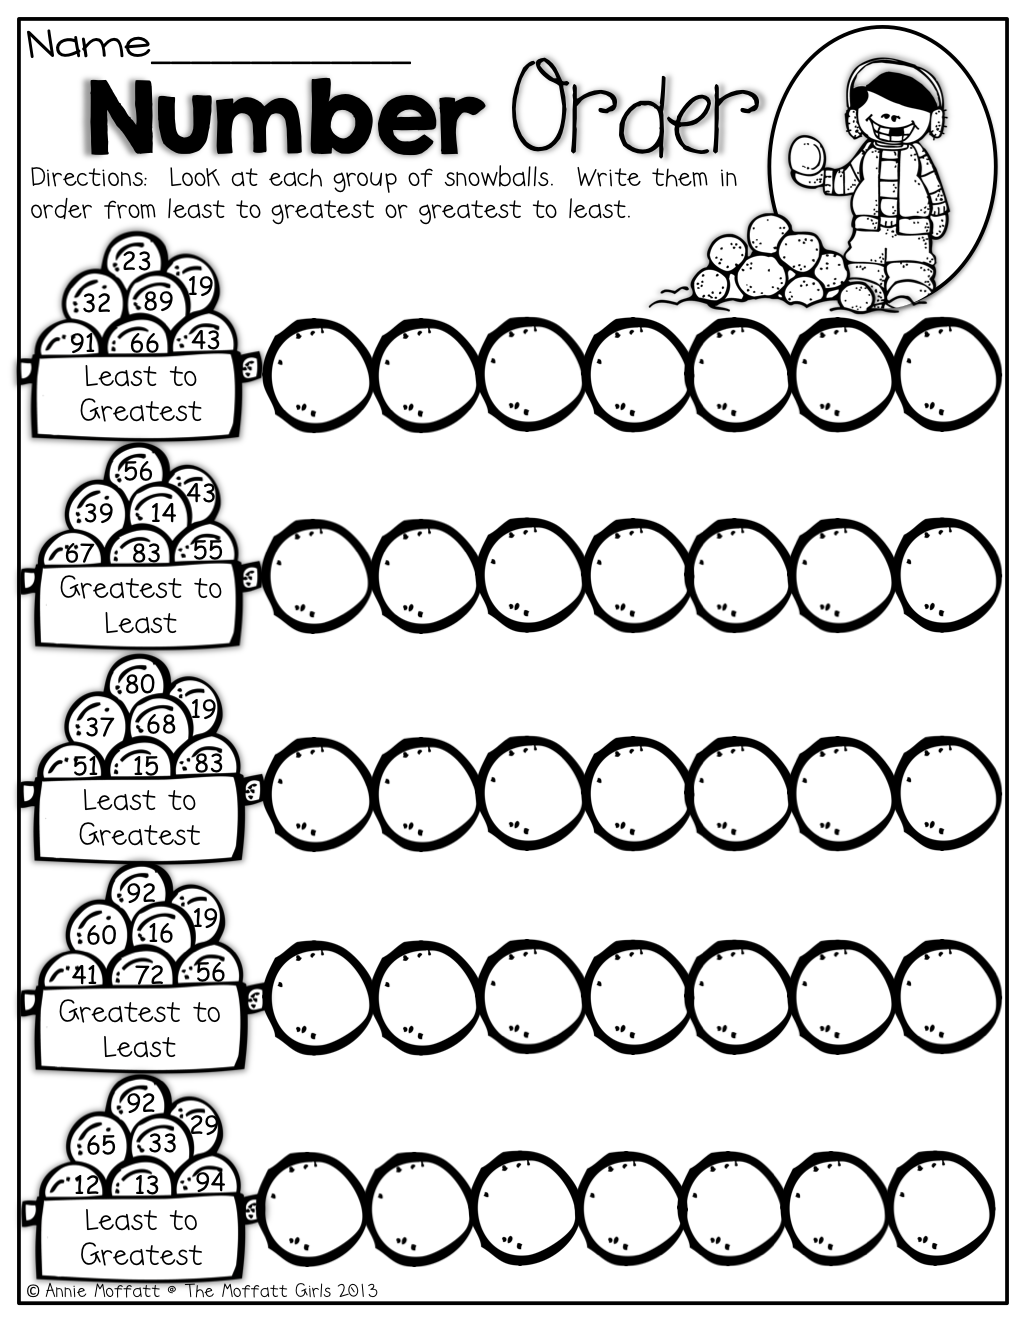 worksheet Ordering Numbers Worksheets number order put the snowballs in from least to greatest and least